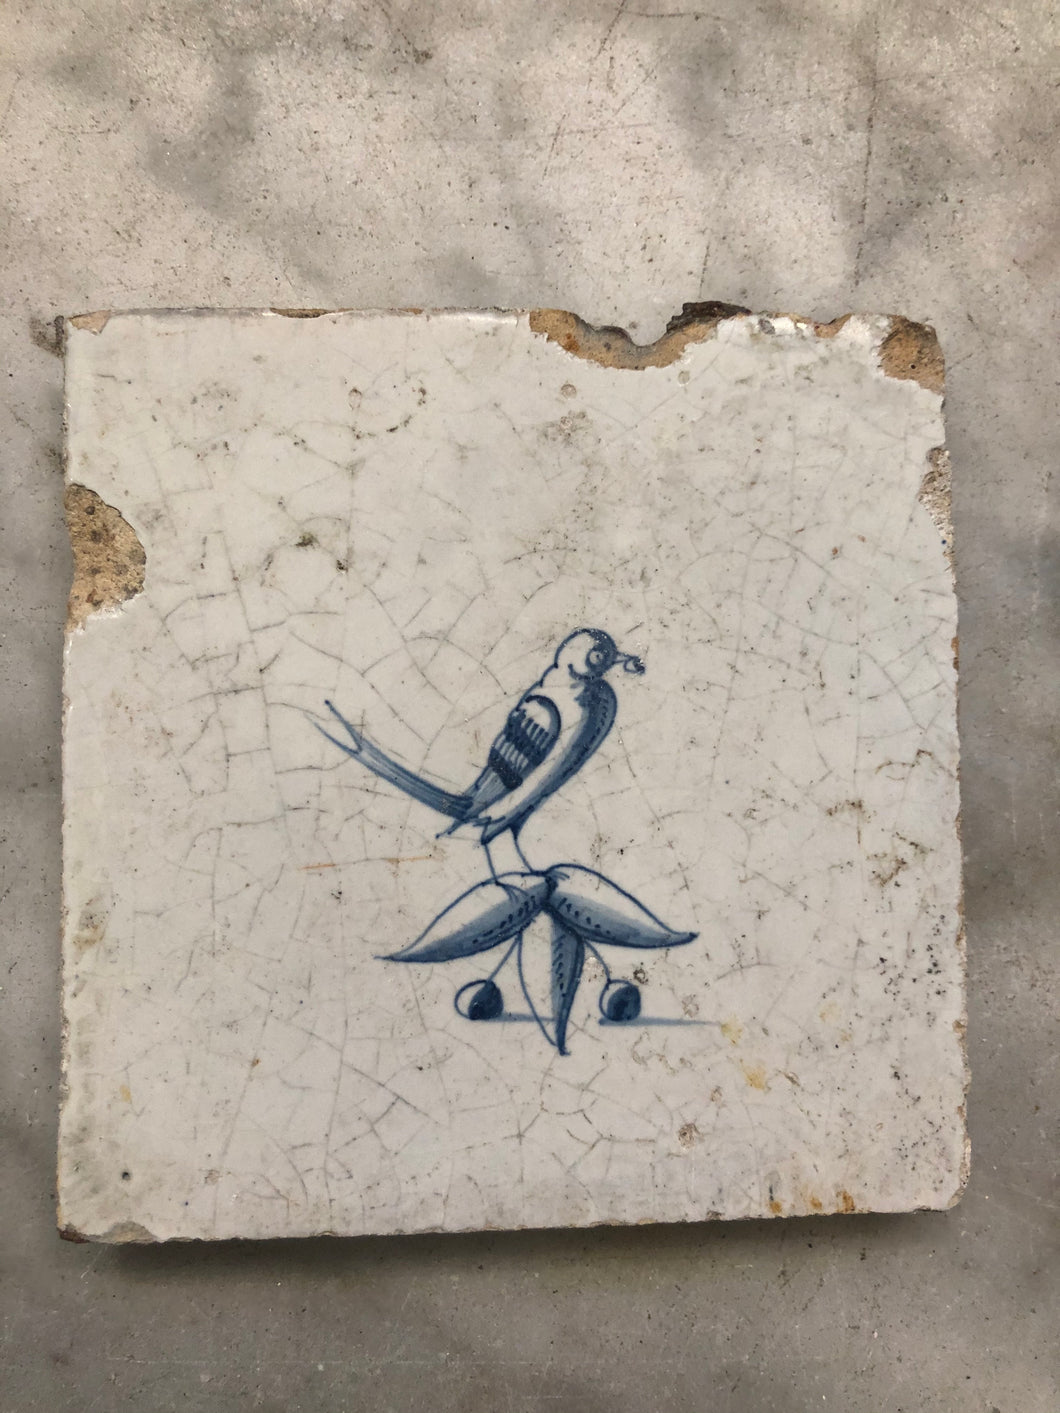 Late 17 th century delft tile with bird